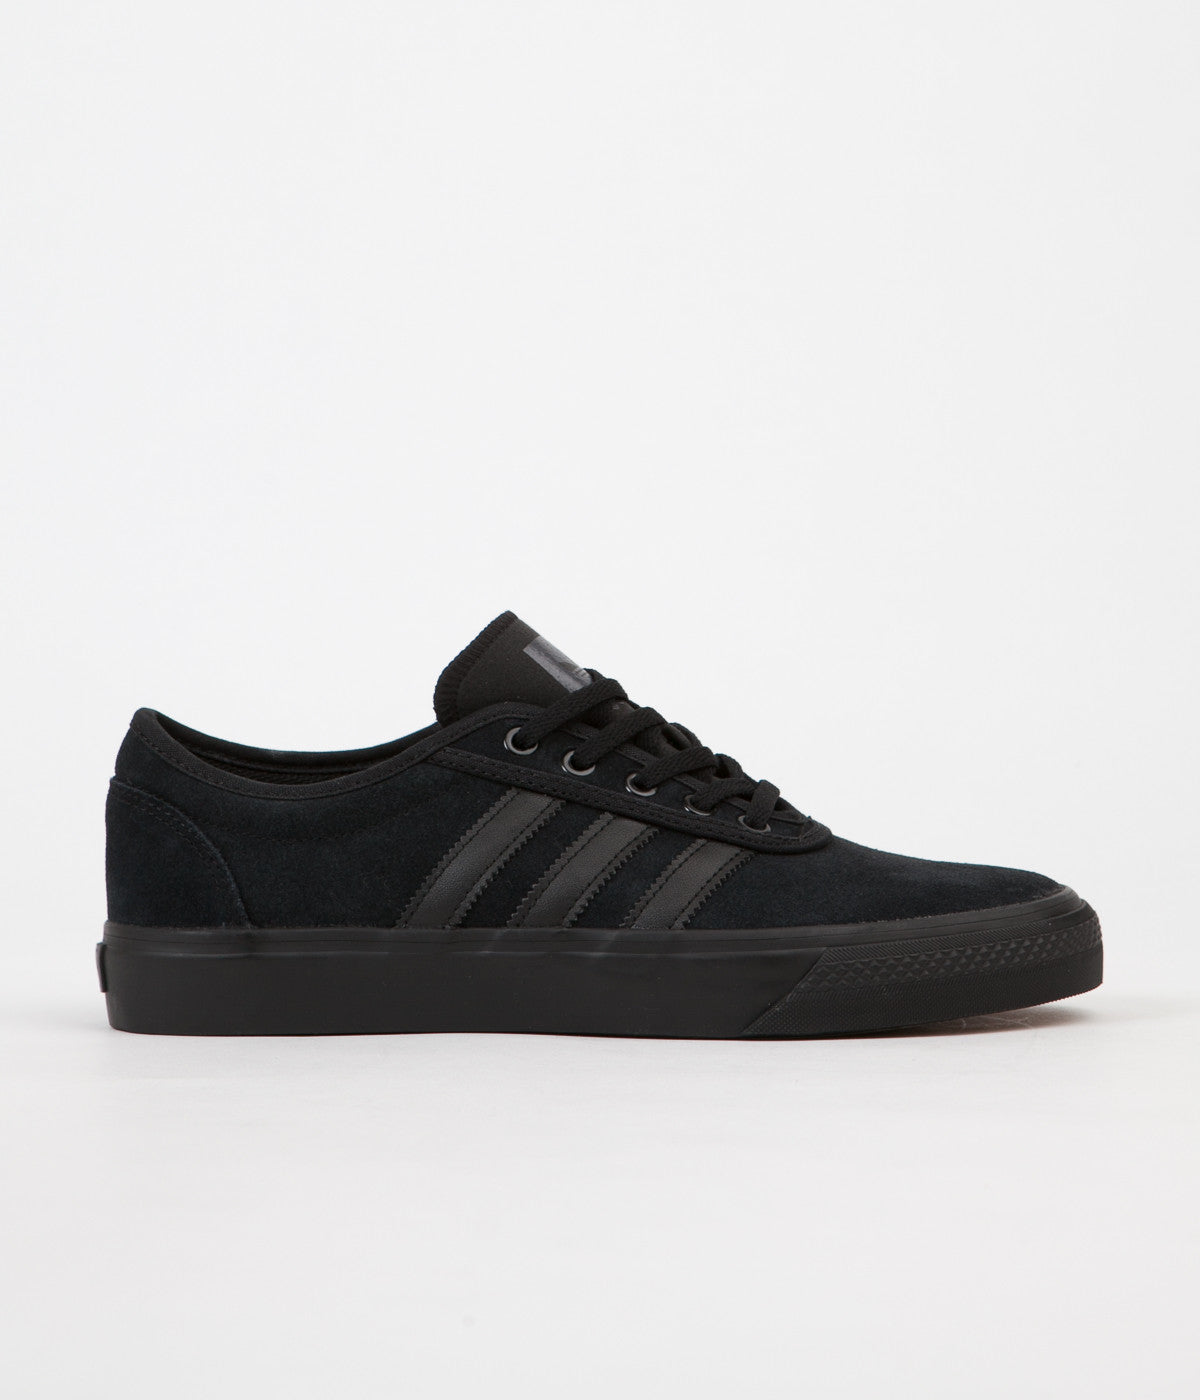 Adidas AdiEase Shoes | $100.00 in 2020